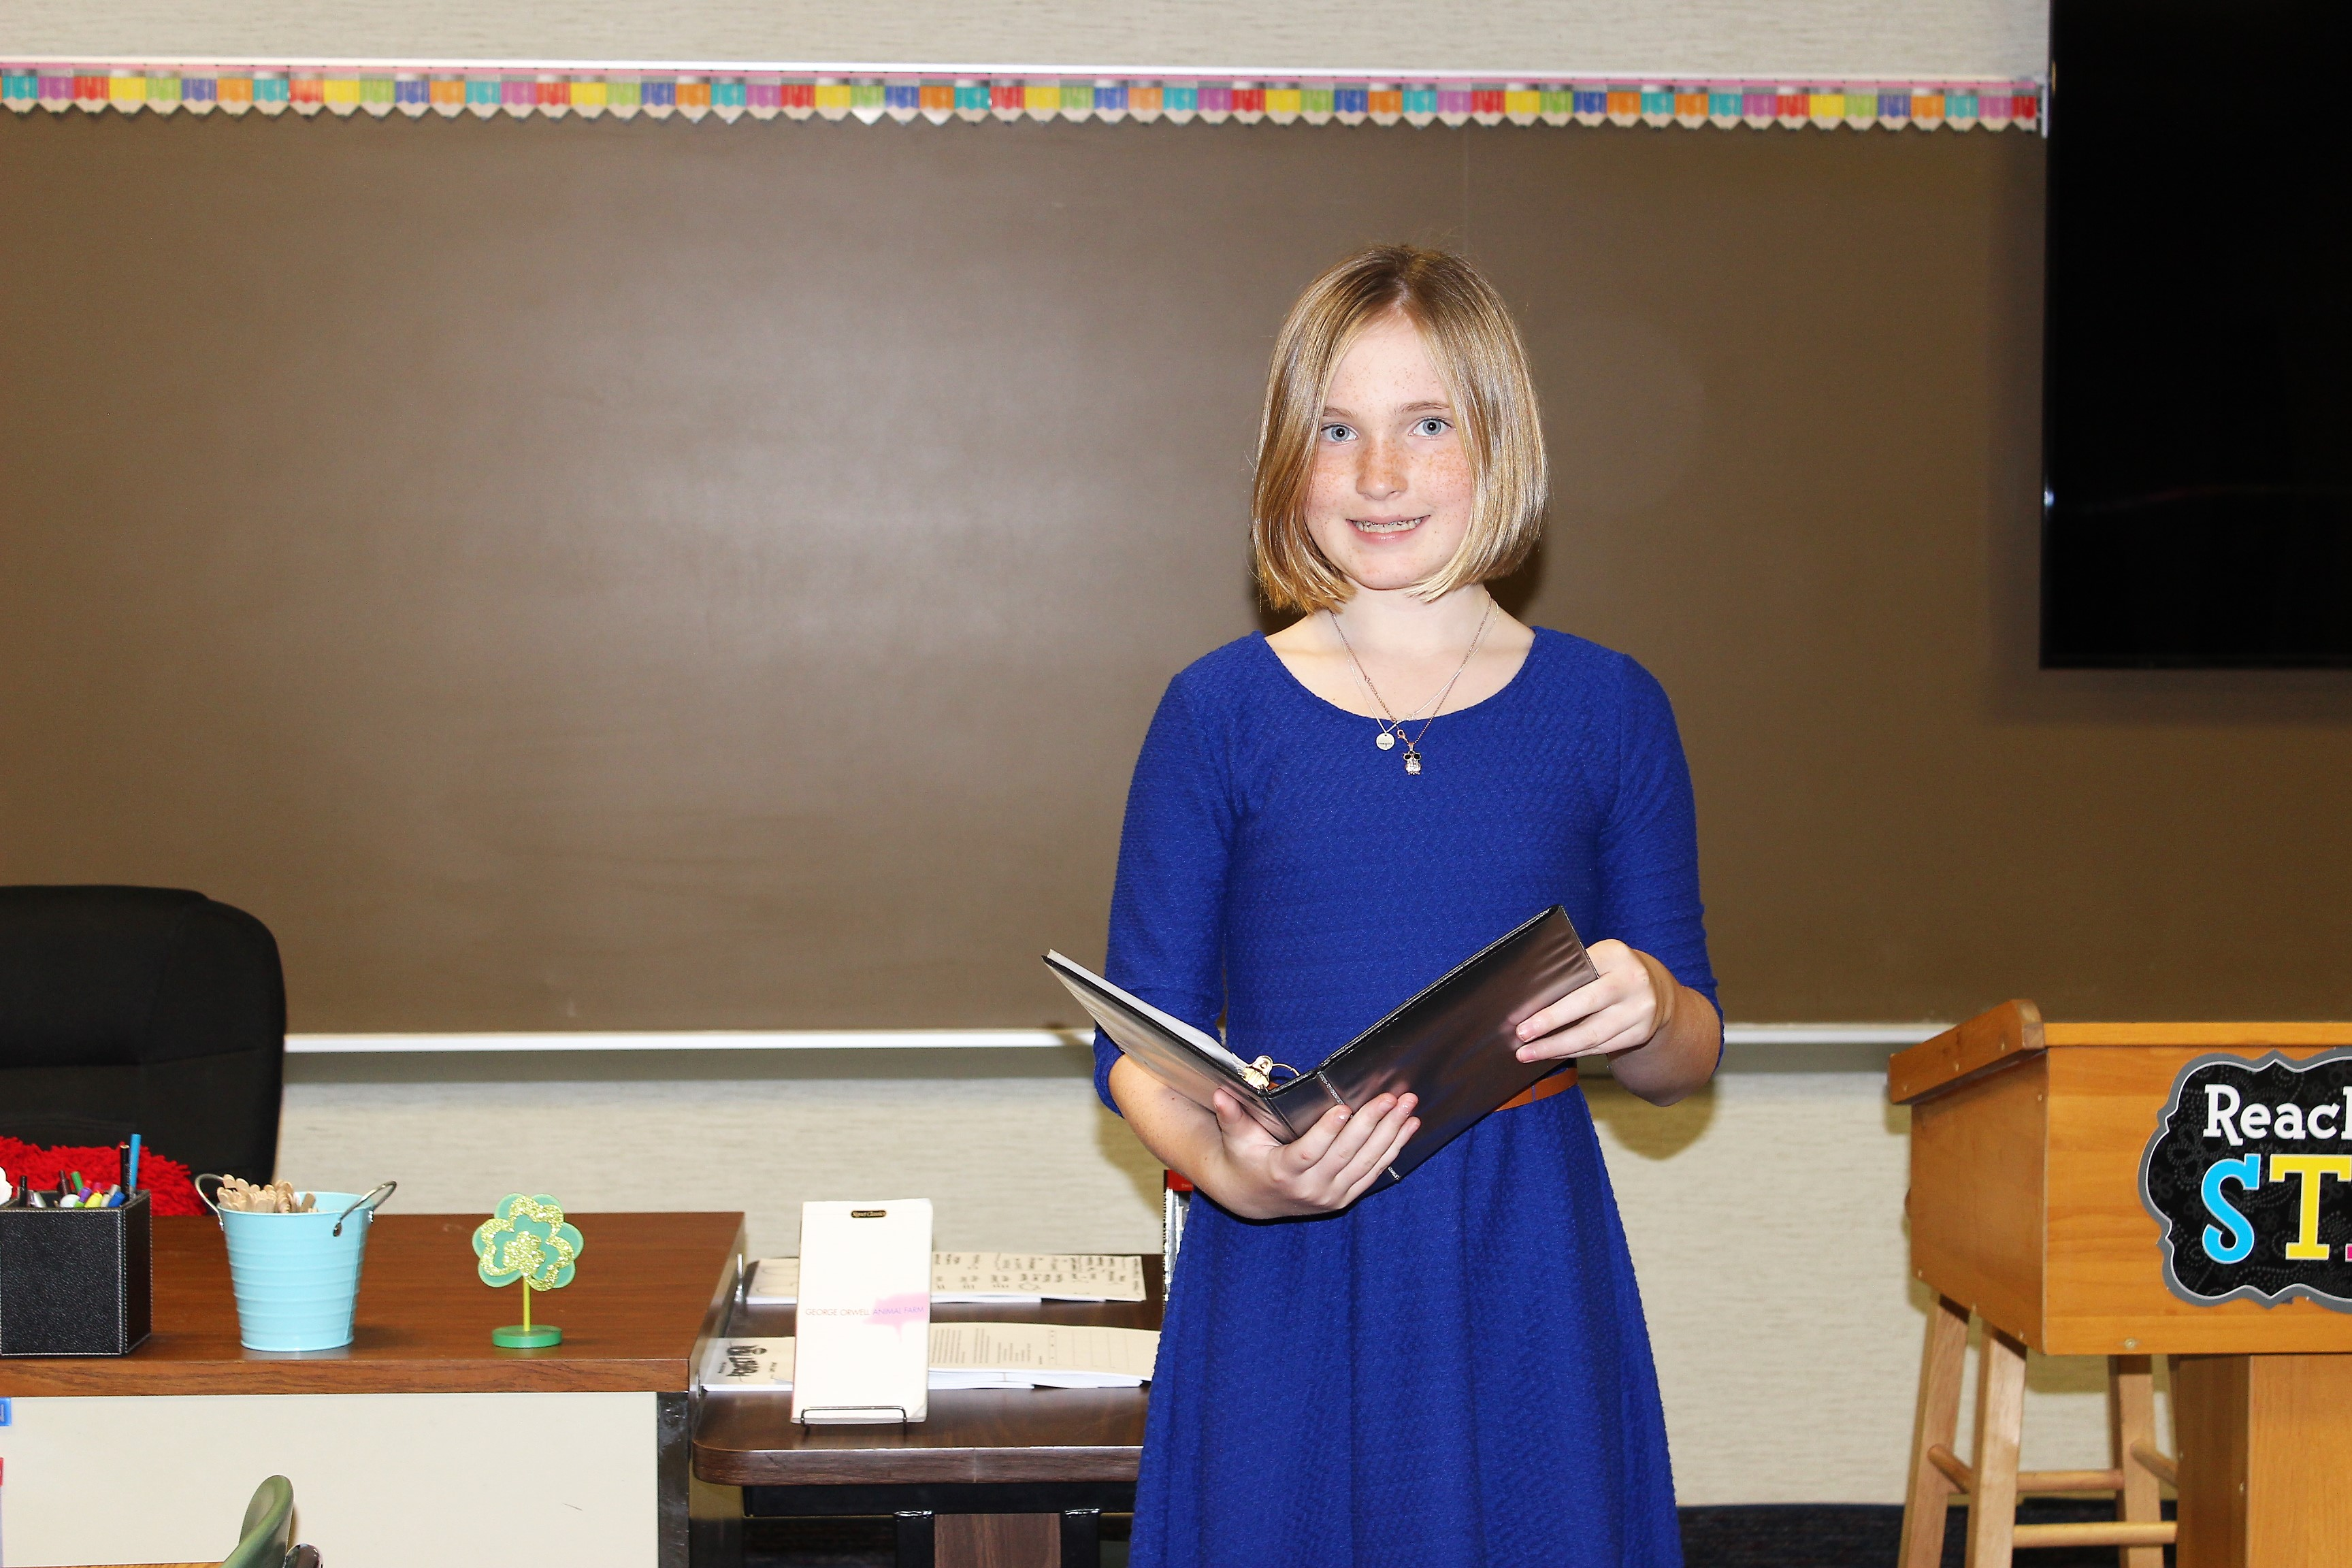 A girl holding a binder standing at the front of a classroom